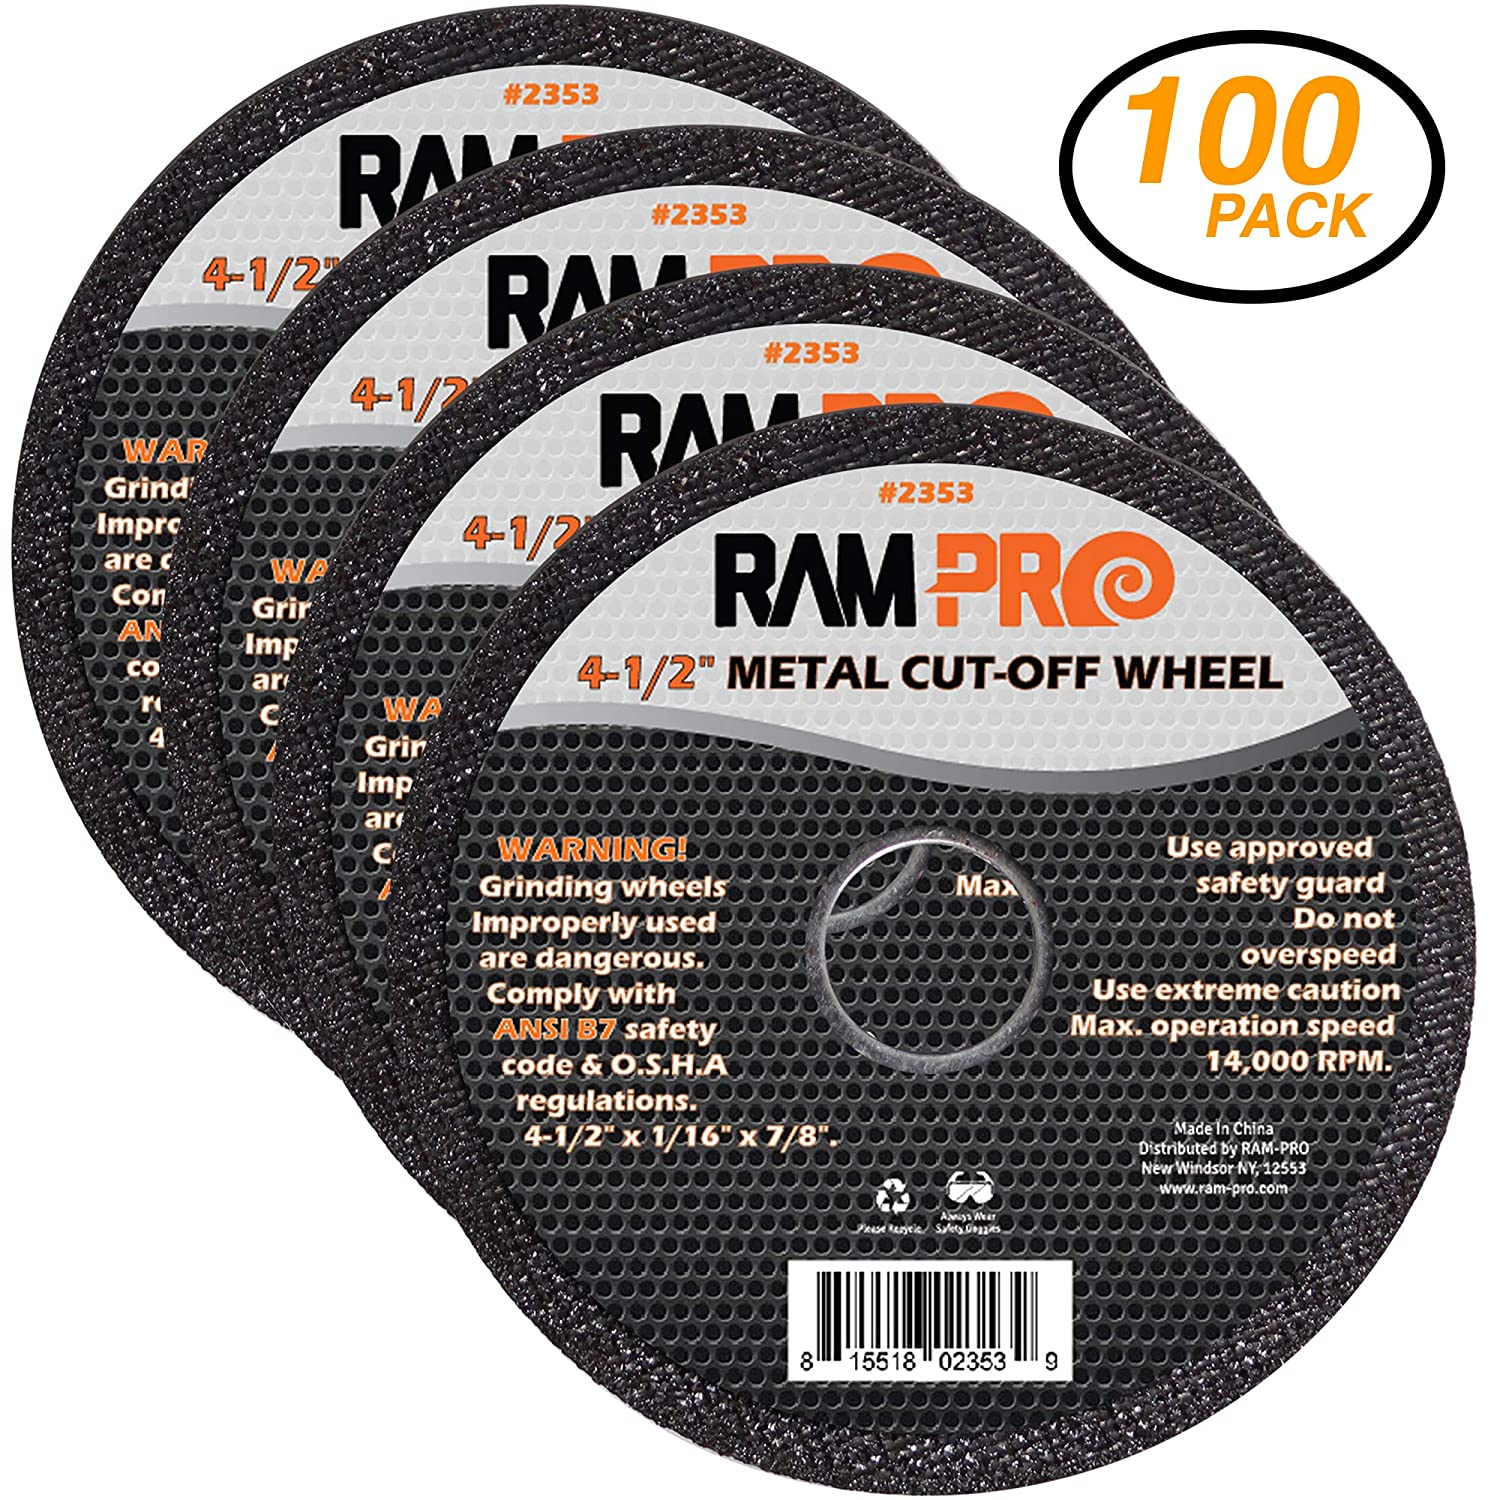 Ram-Pro 4-1//2 Inch Metal Cut-Off Wheel Blades 2353 Mix N More Inc Sanding and Trimming Ferrous Metal /& Steel Abrasive Arbor Grinder Disc Set Ideal for Cutting Grooving 50 Pack